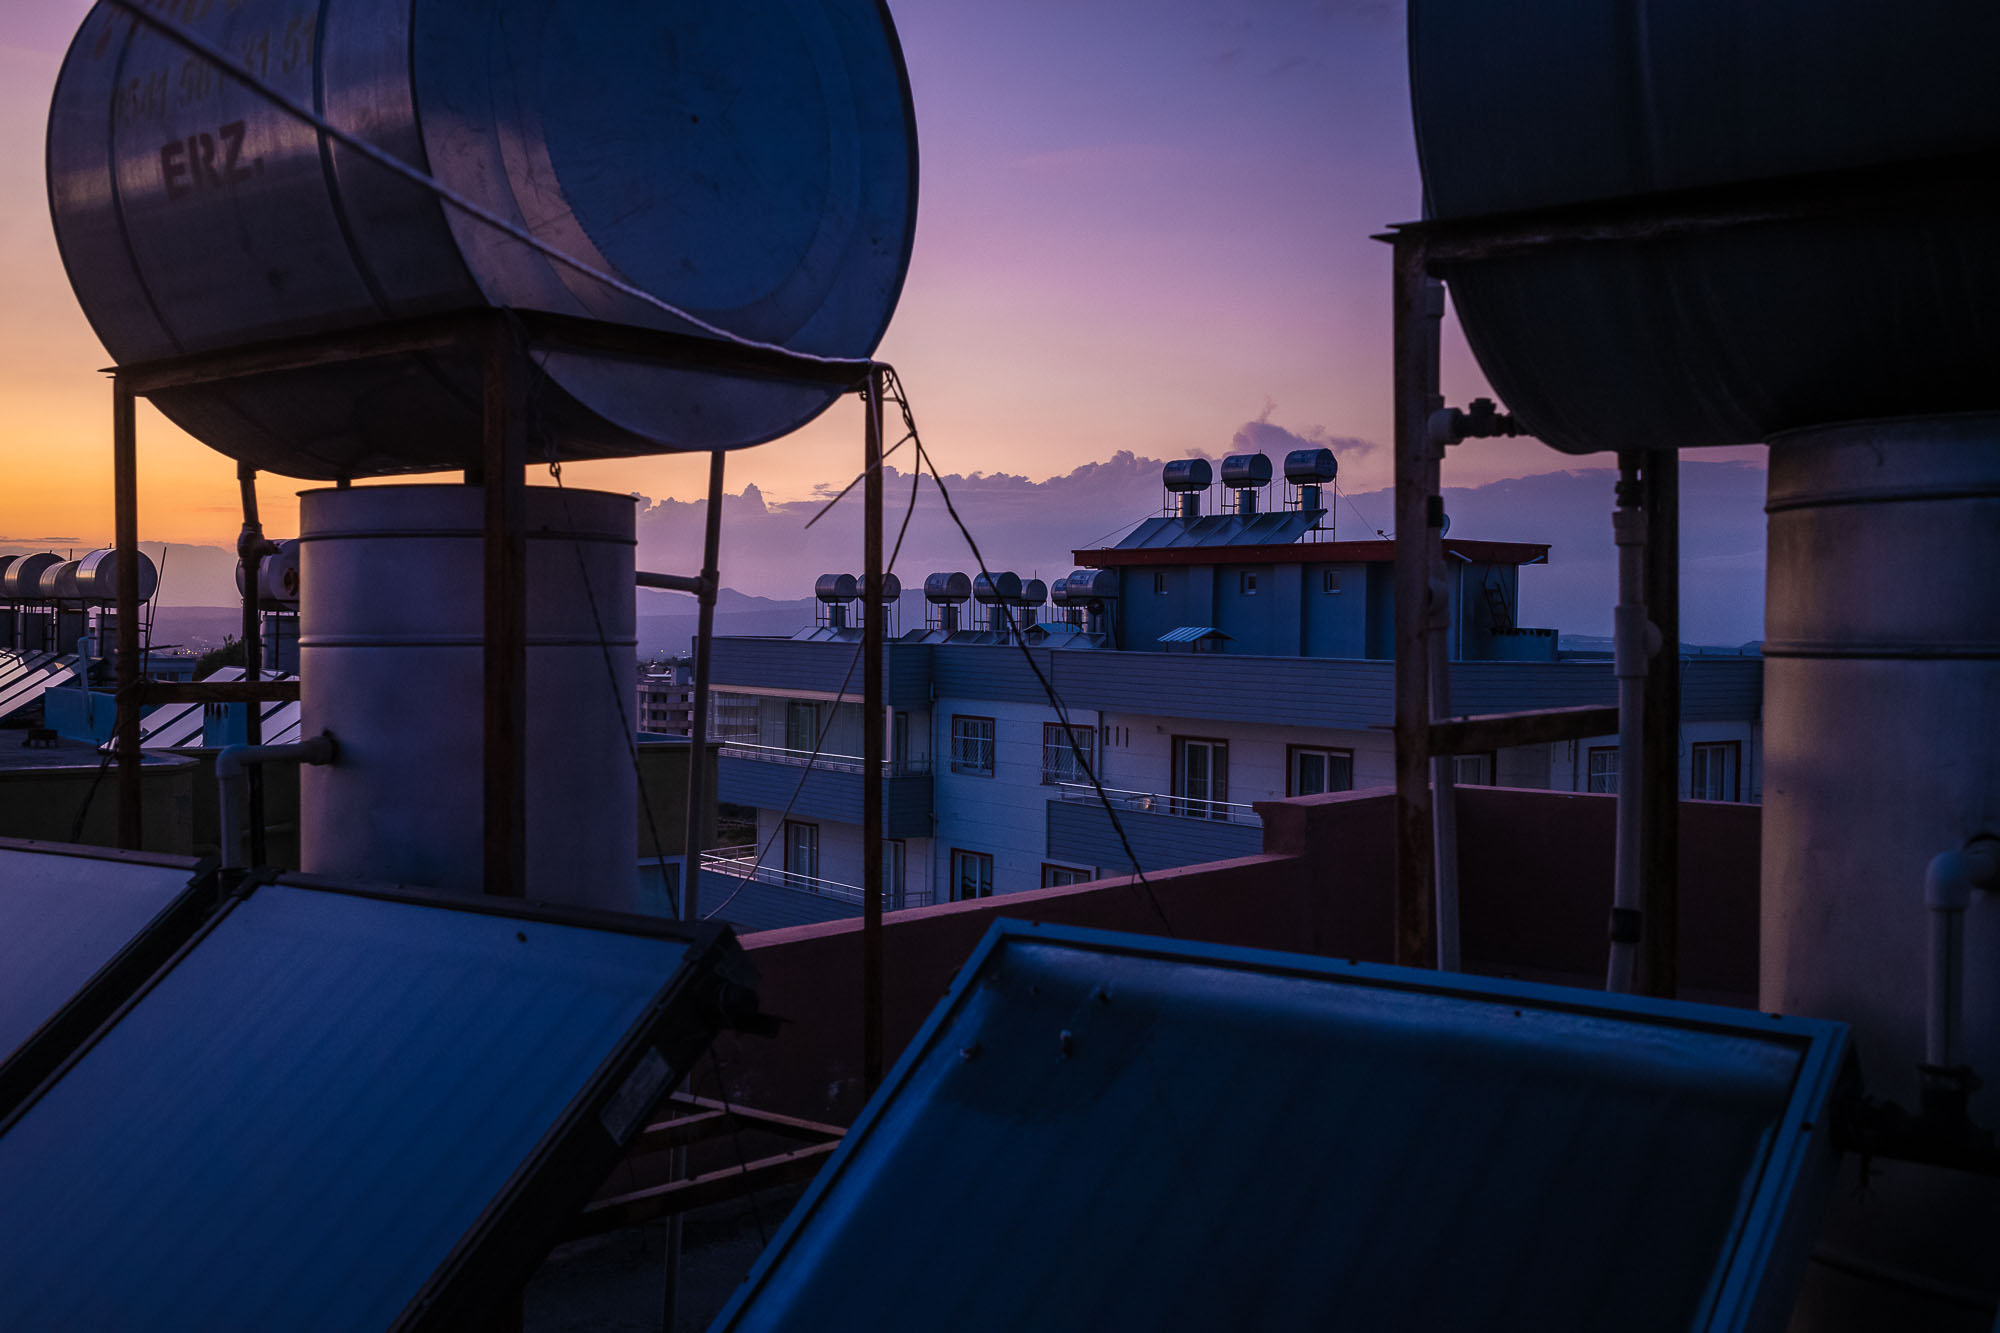 Rooftop filled with solar hear units, purple, sunset sky in the background